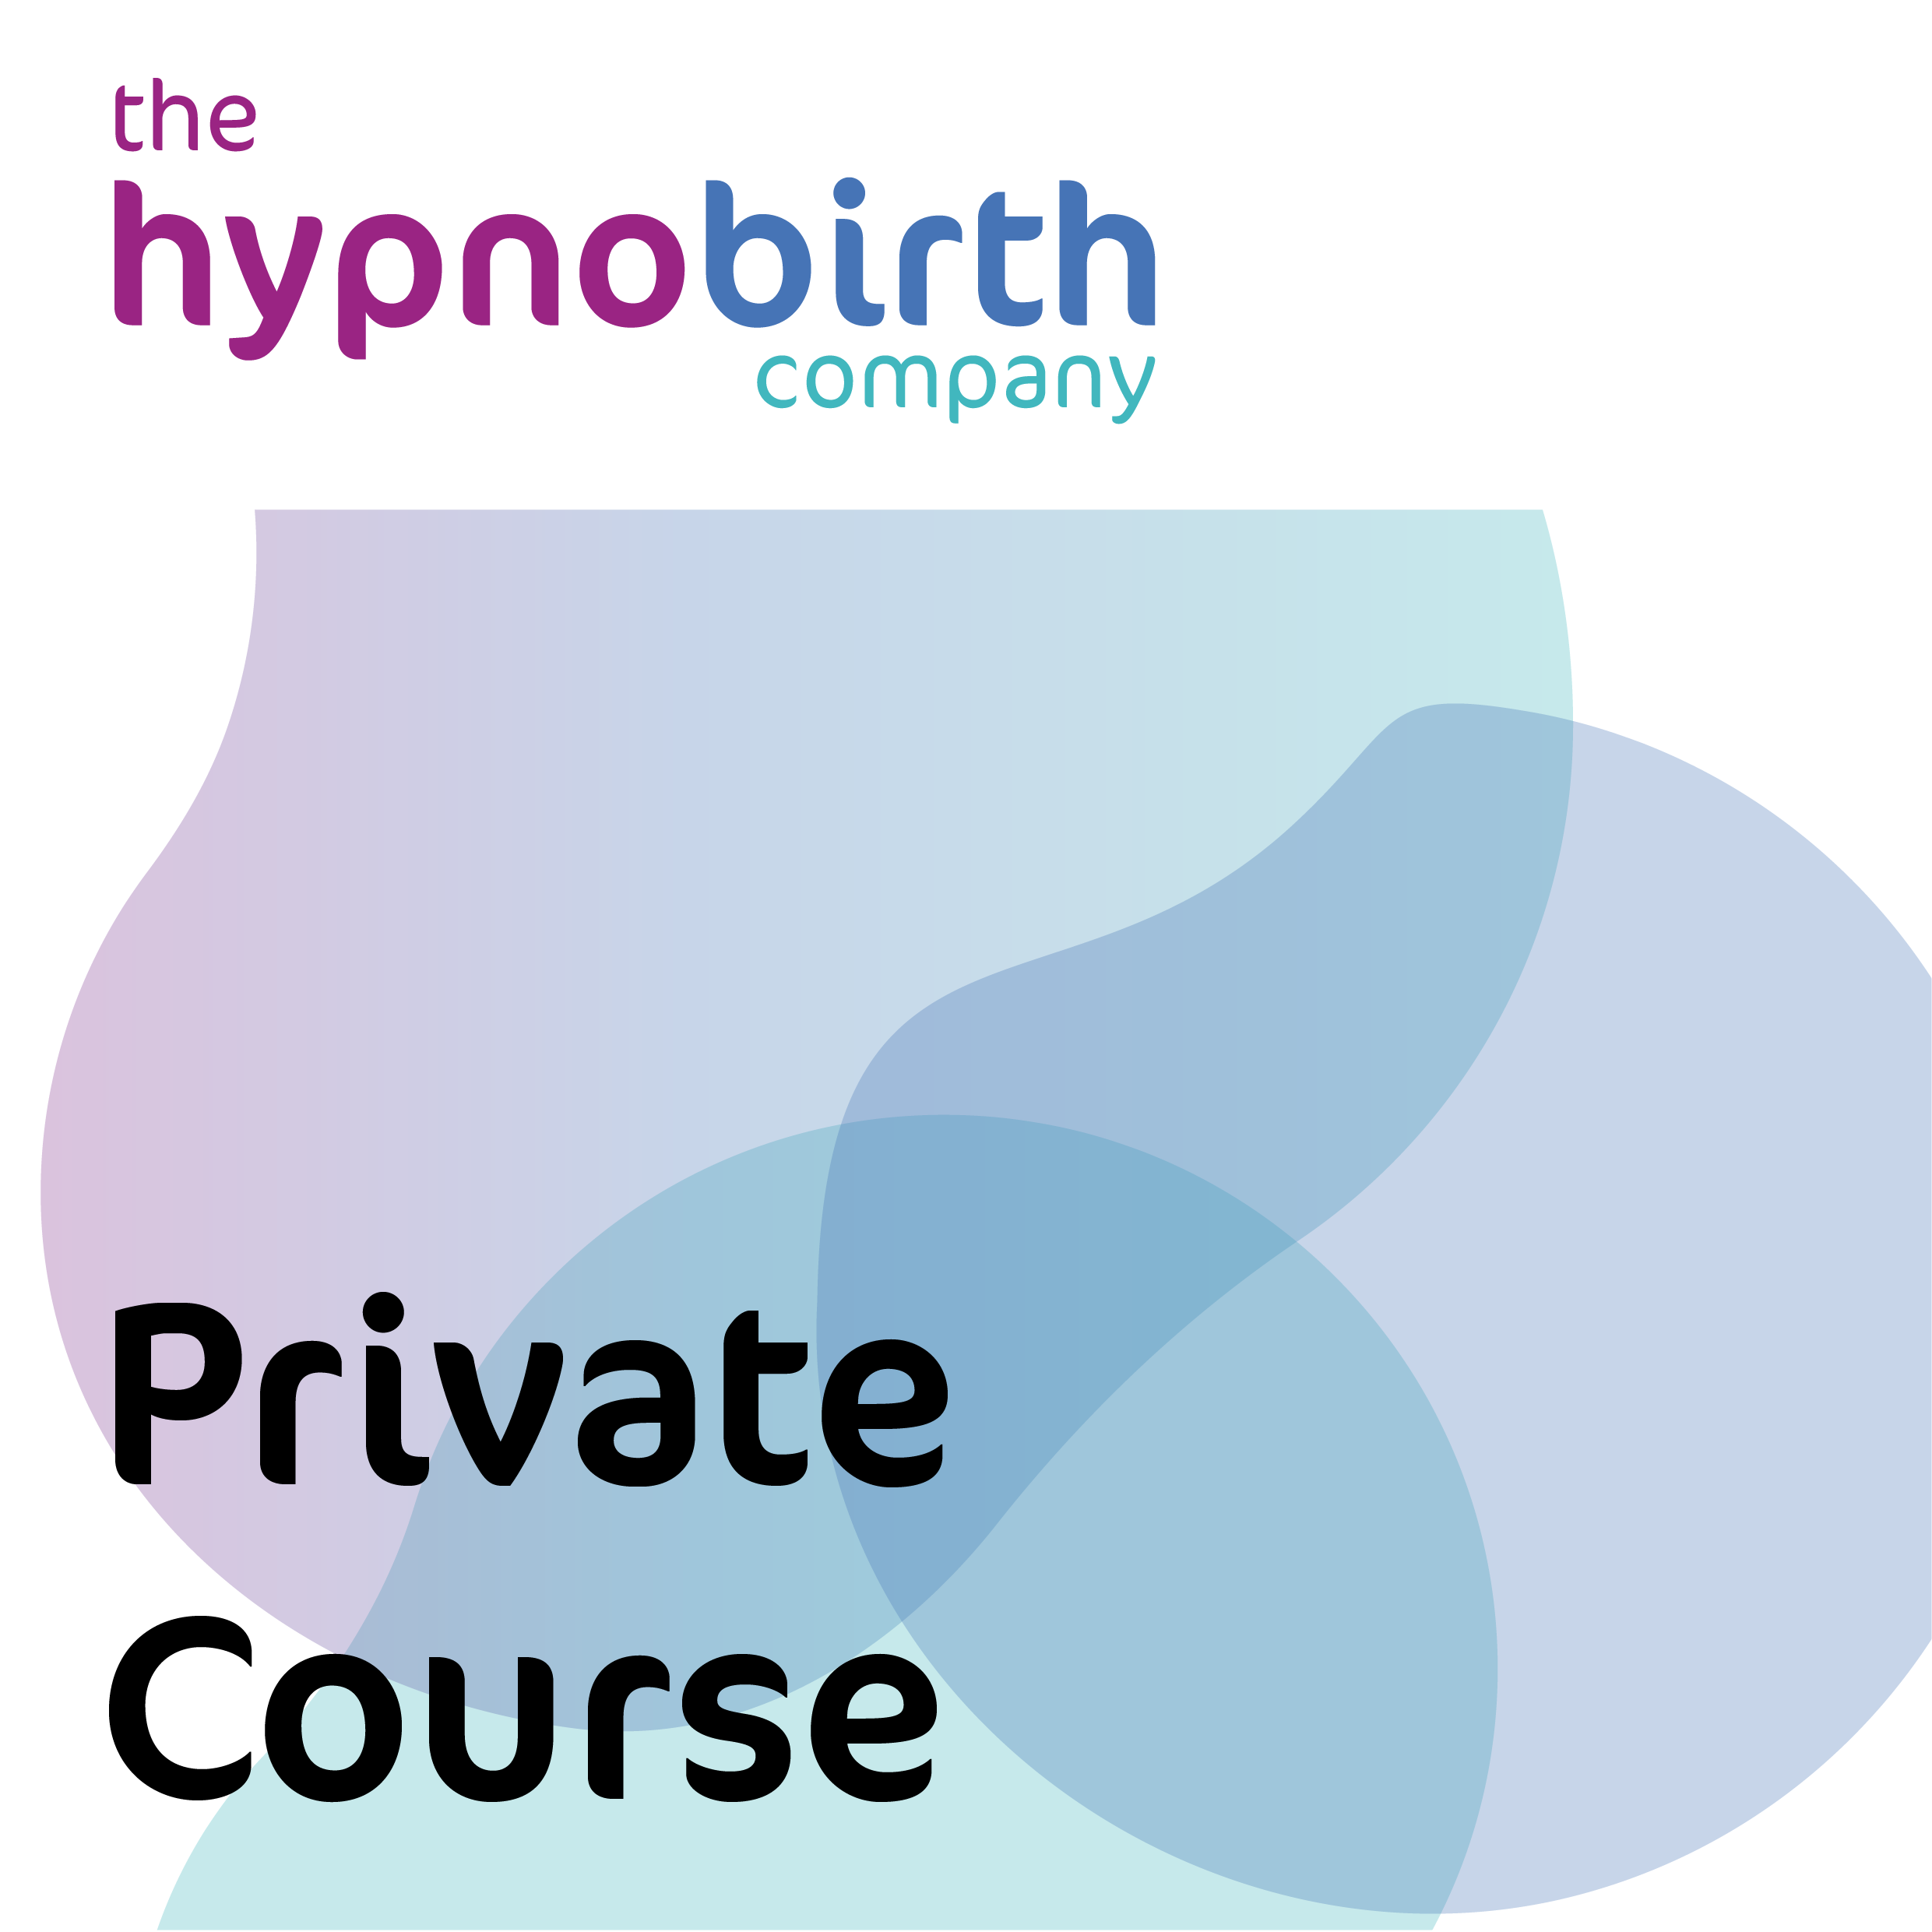 Private Course-01.png